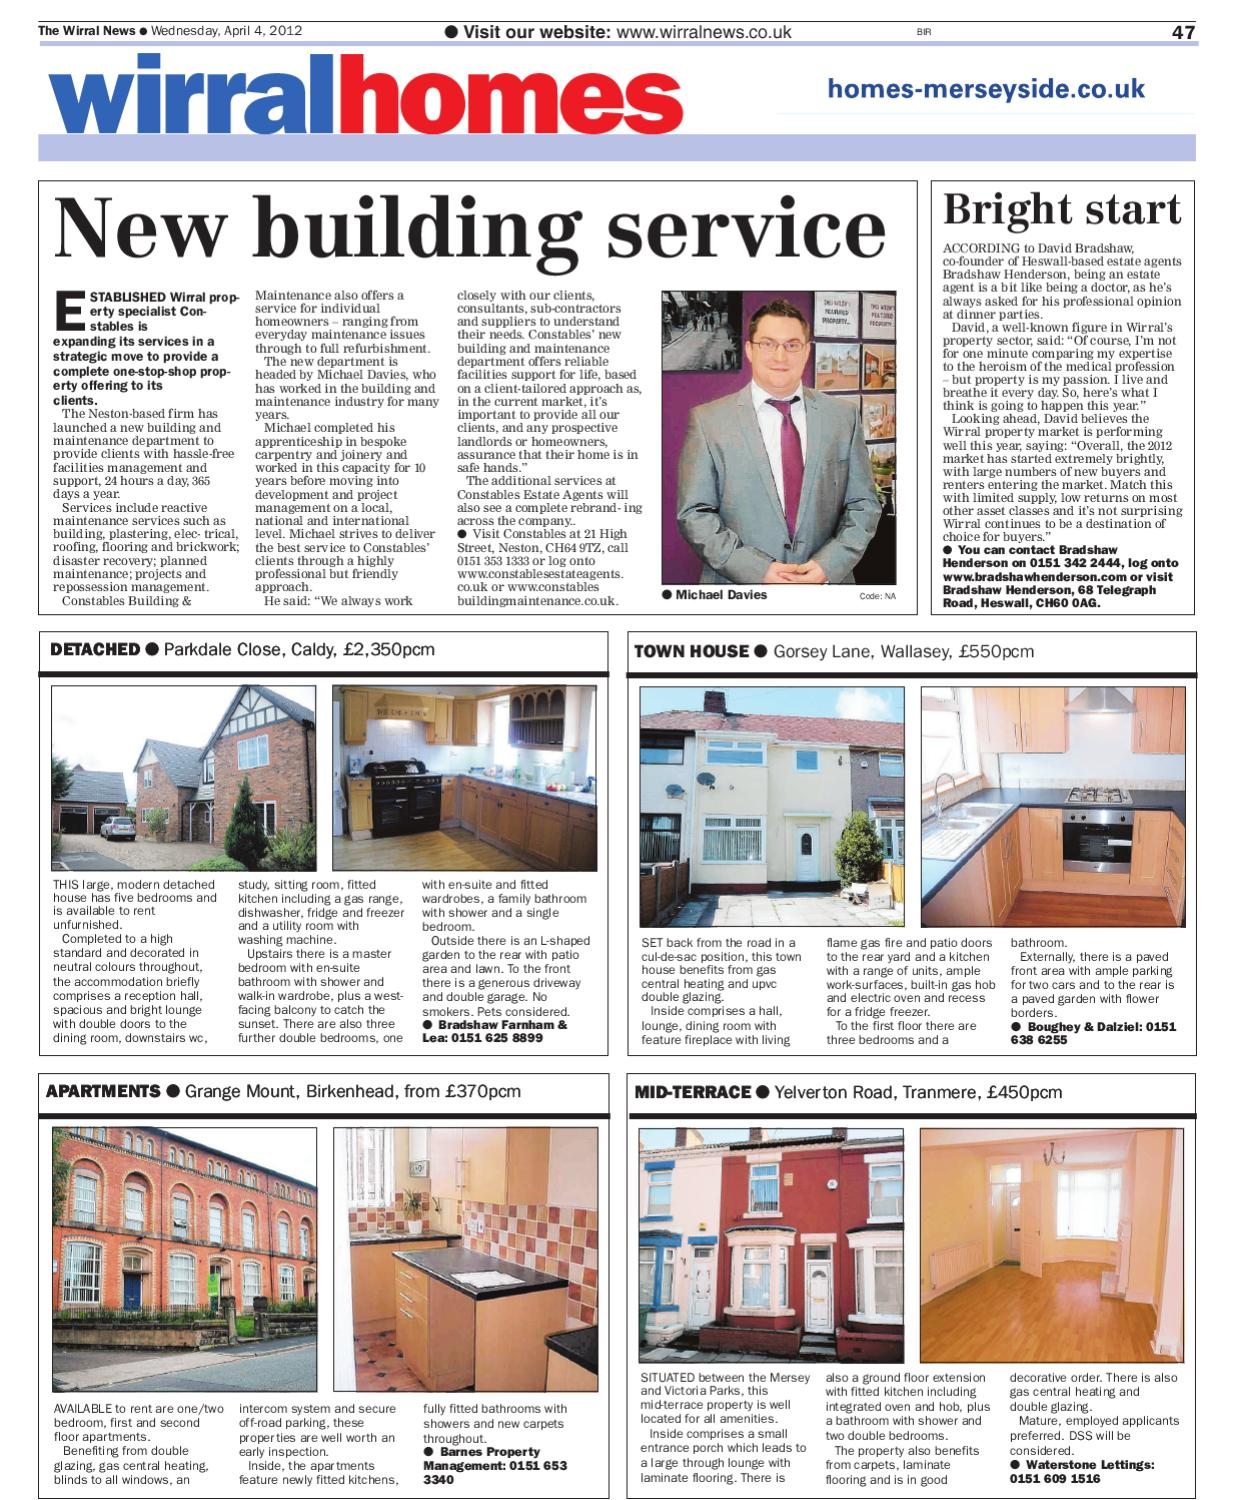 Wirral Homes Property Wallasey Edition 4th April 2012